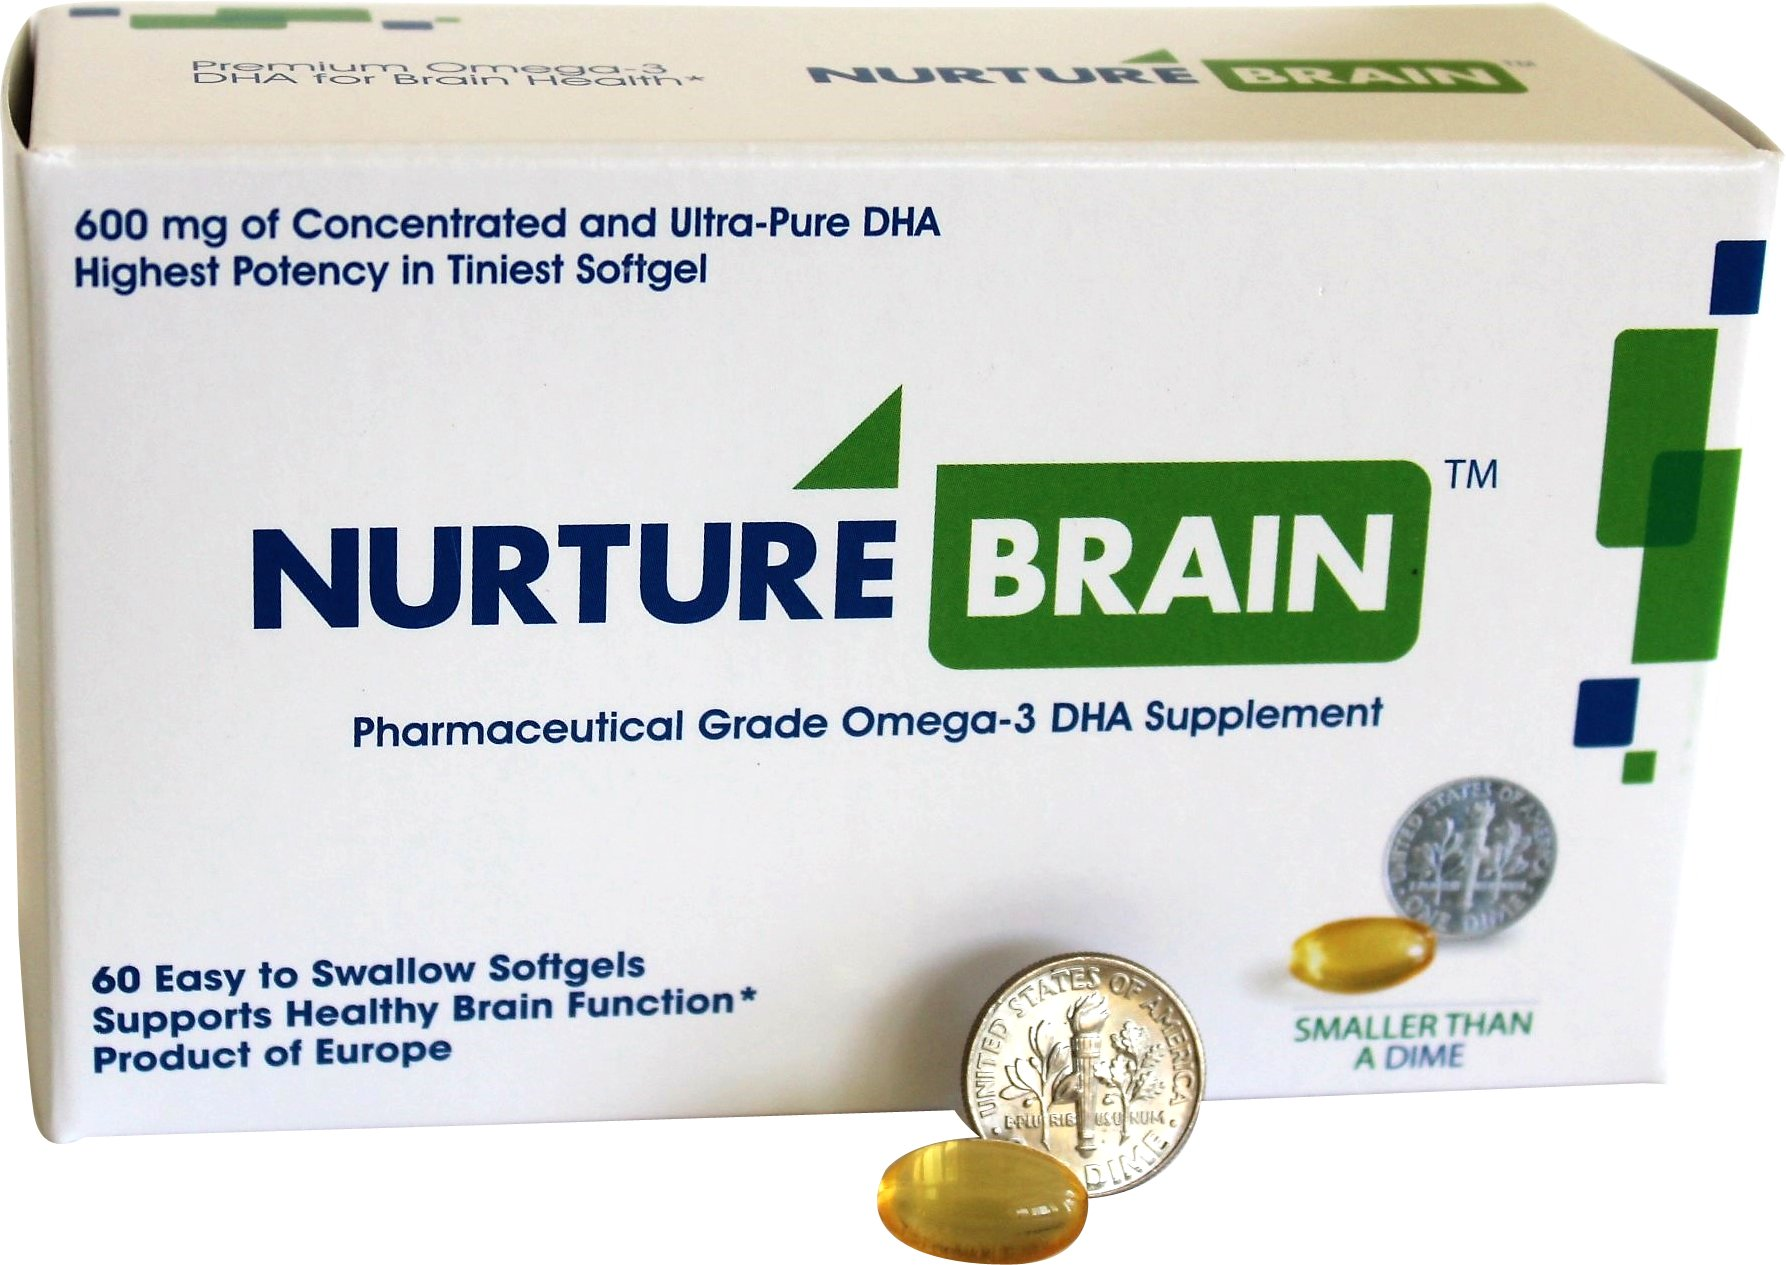 Nurture Brain Concentrated Omega 3 DHA Supplement for Healthy Brain Function in Men, Women, Teens, Seniors (60 Softgels 600 mg DHA per dose)